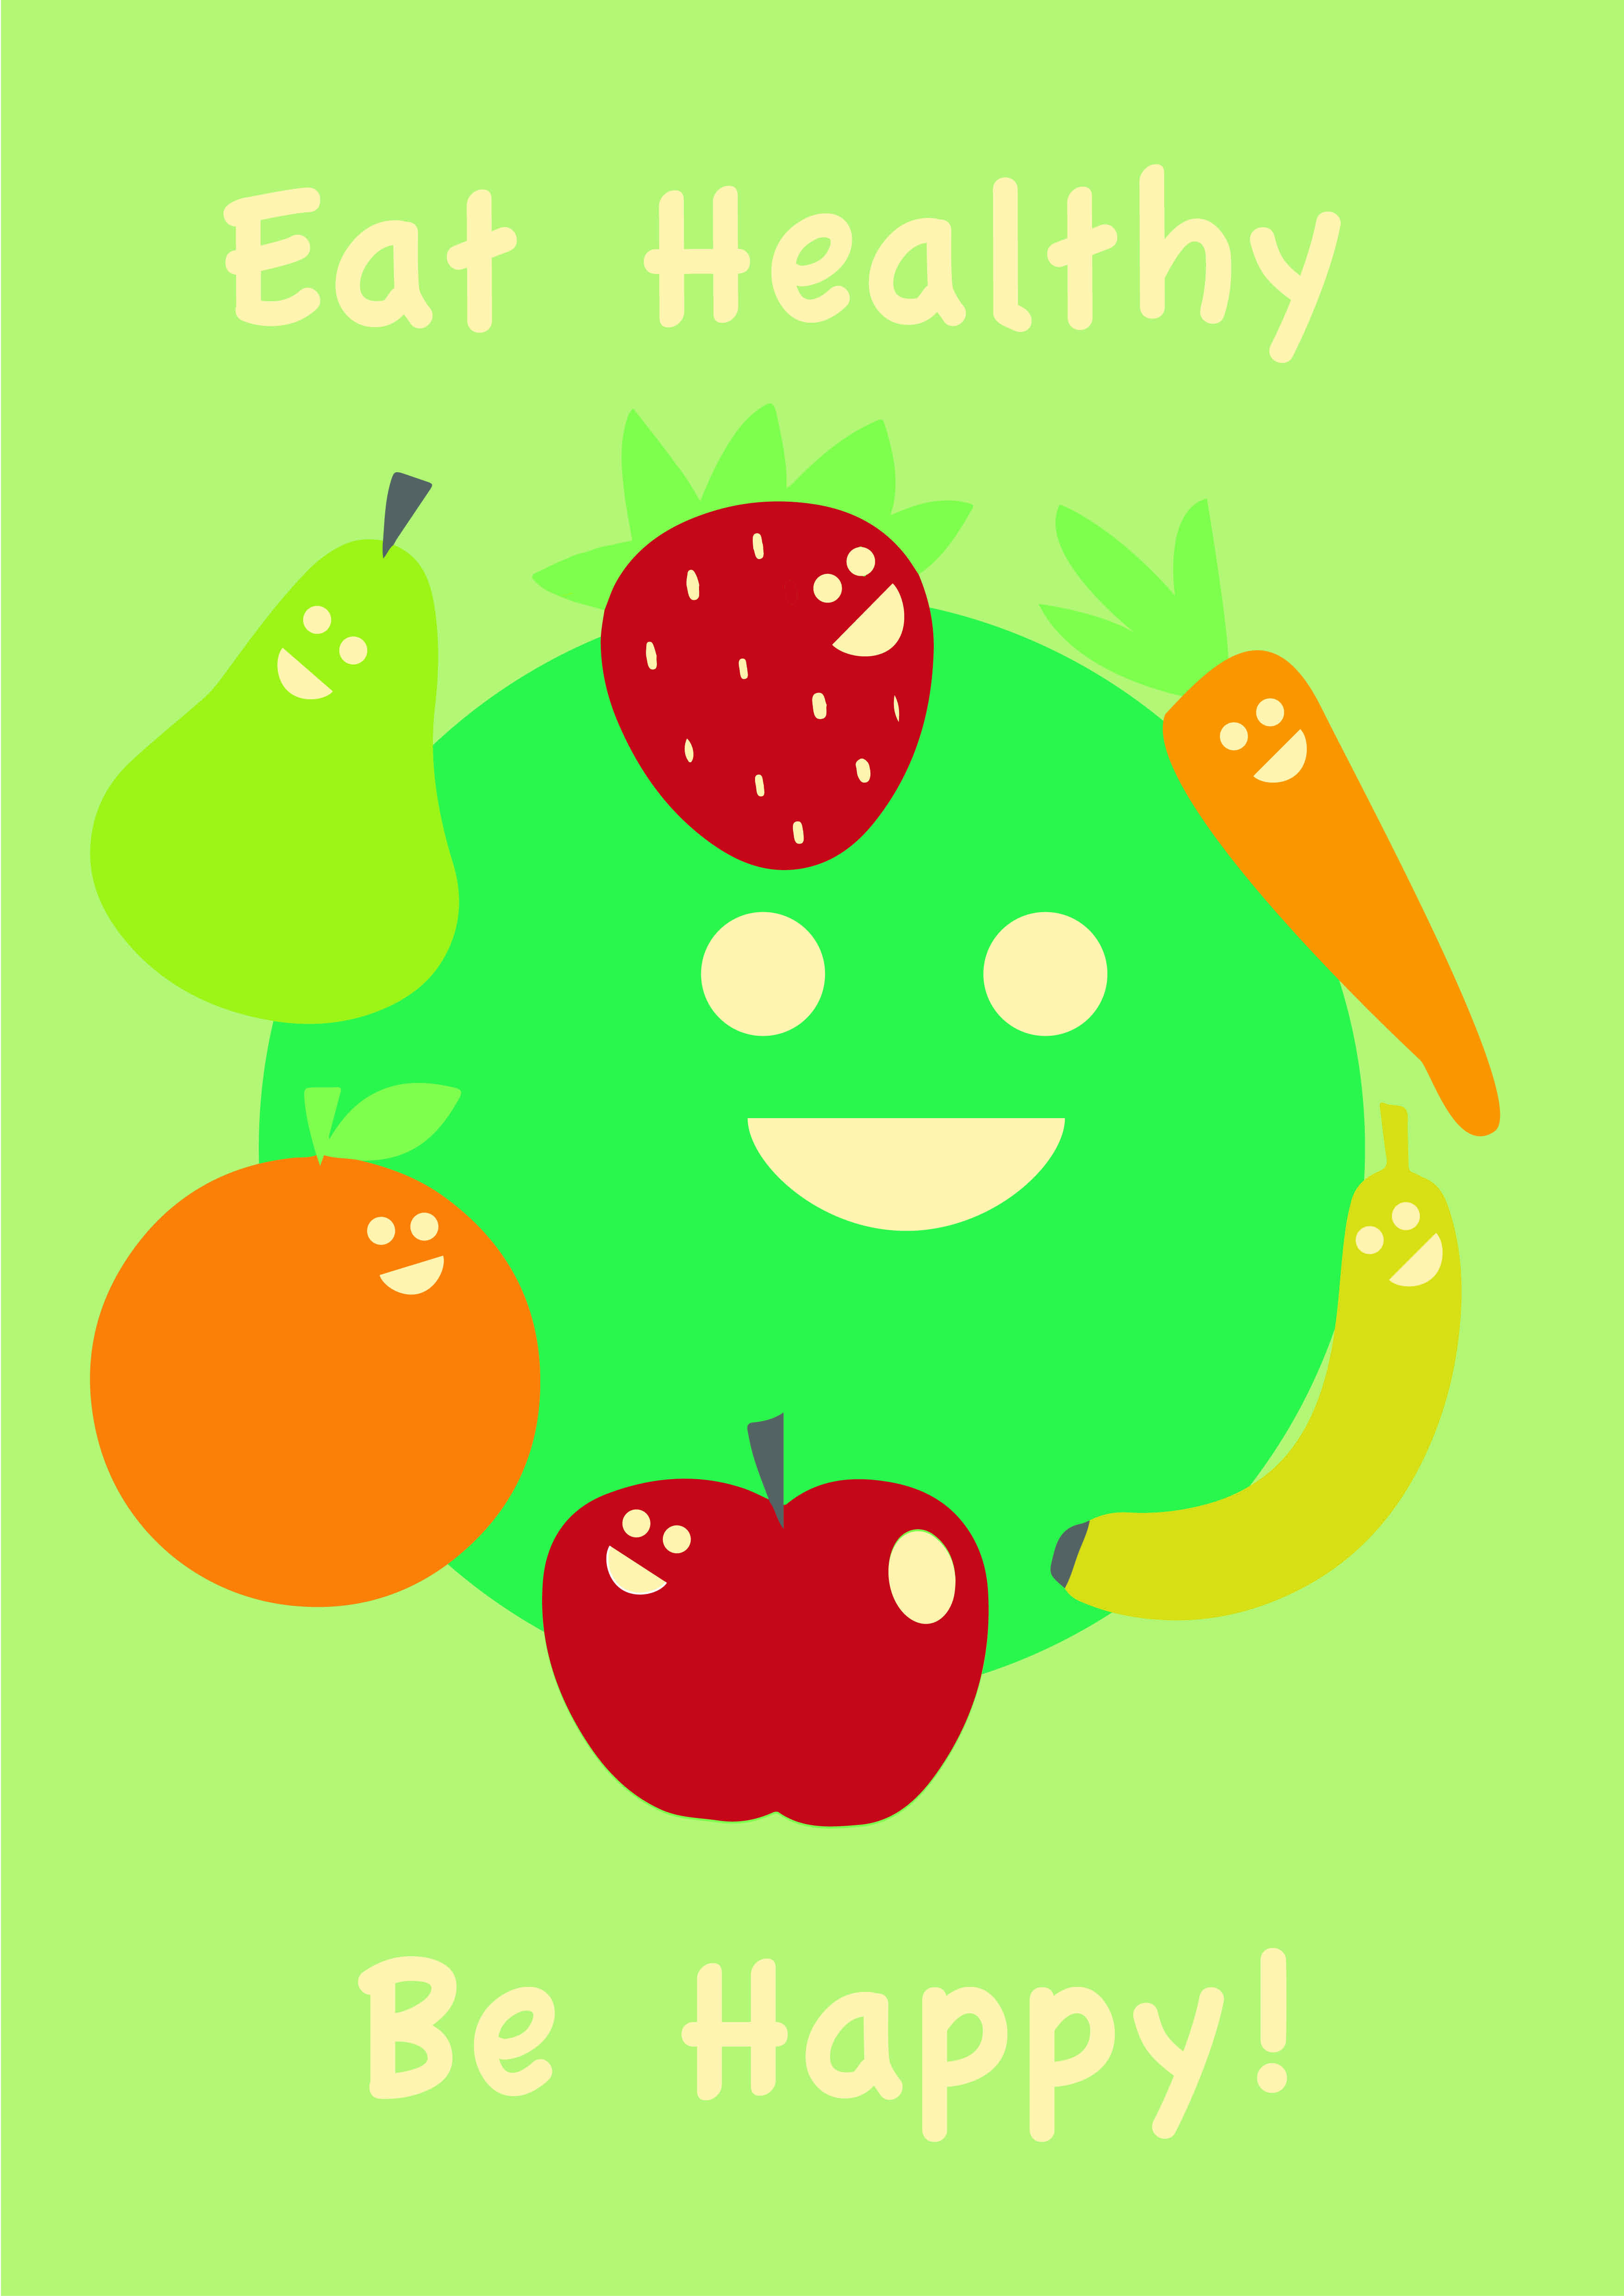 002 Simple Healthy Eating Poster for Primary School Healthy